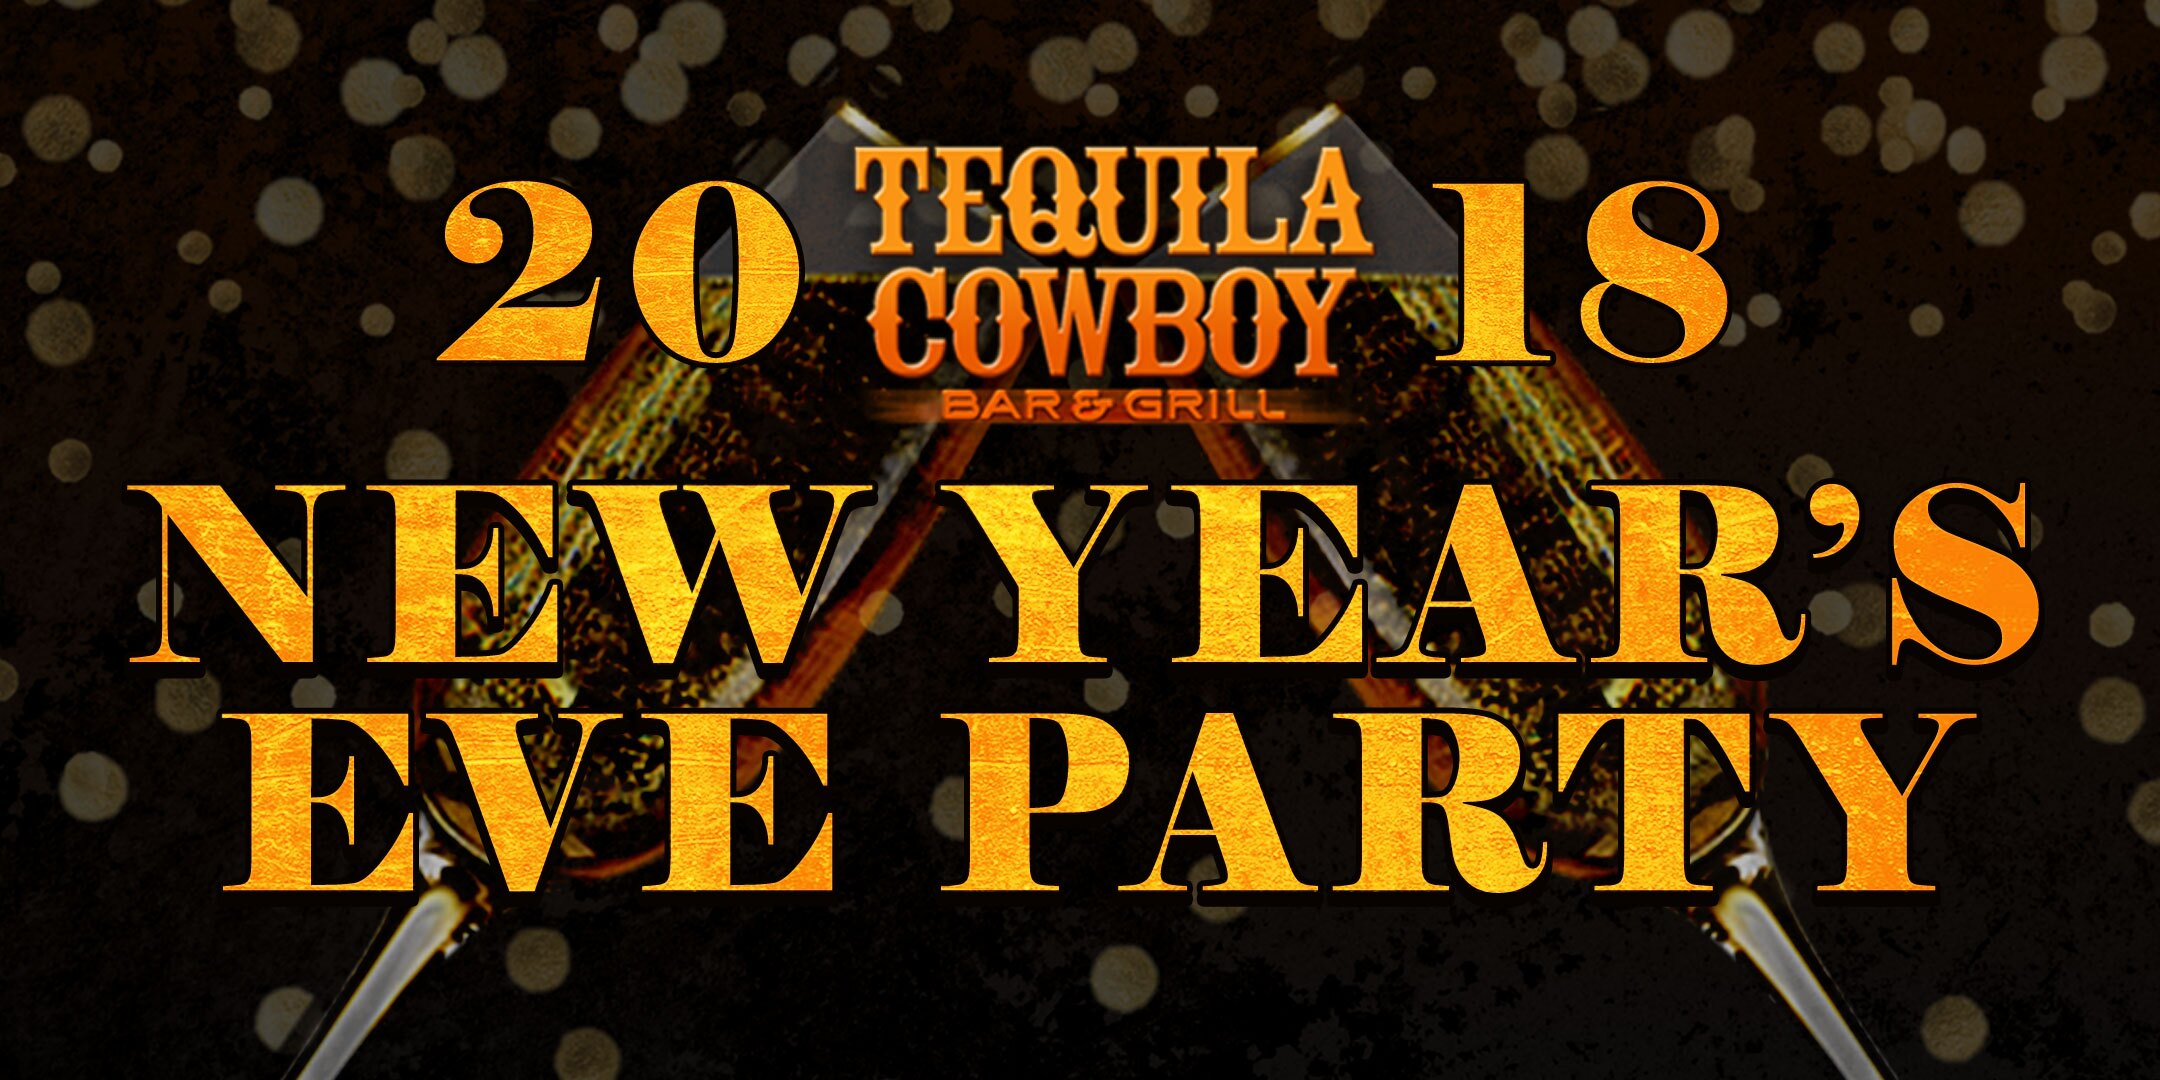 New Year's Eve Bash Tequila Cowboy Bar